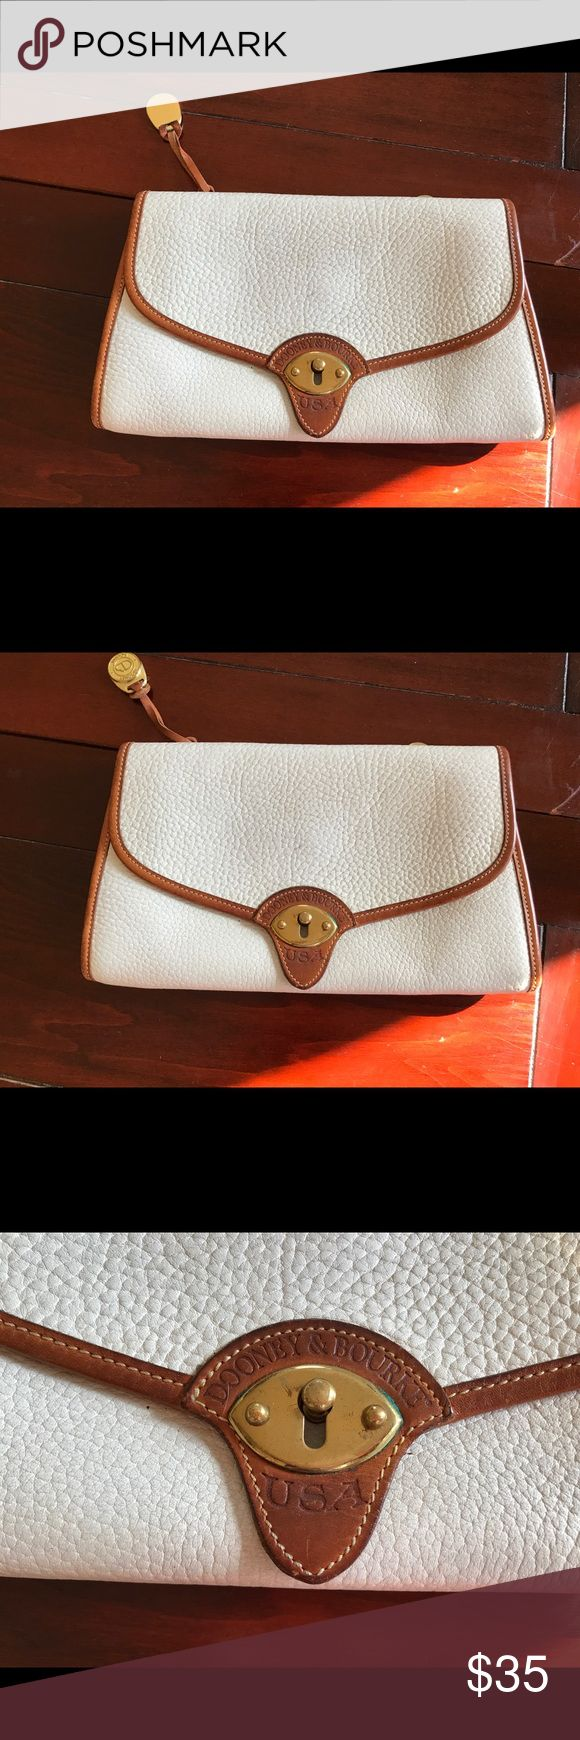 Dooney & Bourke white leather envelope clutch White pebbled leather envelope clutch with cognac trim. Can attach to a shoulder strap (not included). Lovely vintage condition. Some stray interior pen marks.  I'd love to combine this sale with an accompanying navy shoulder bag. Strap is interchangeable! Dooney & Bourke Bags Clutches & Wristlets